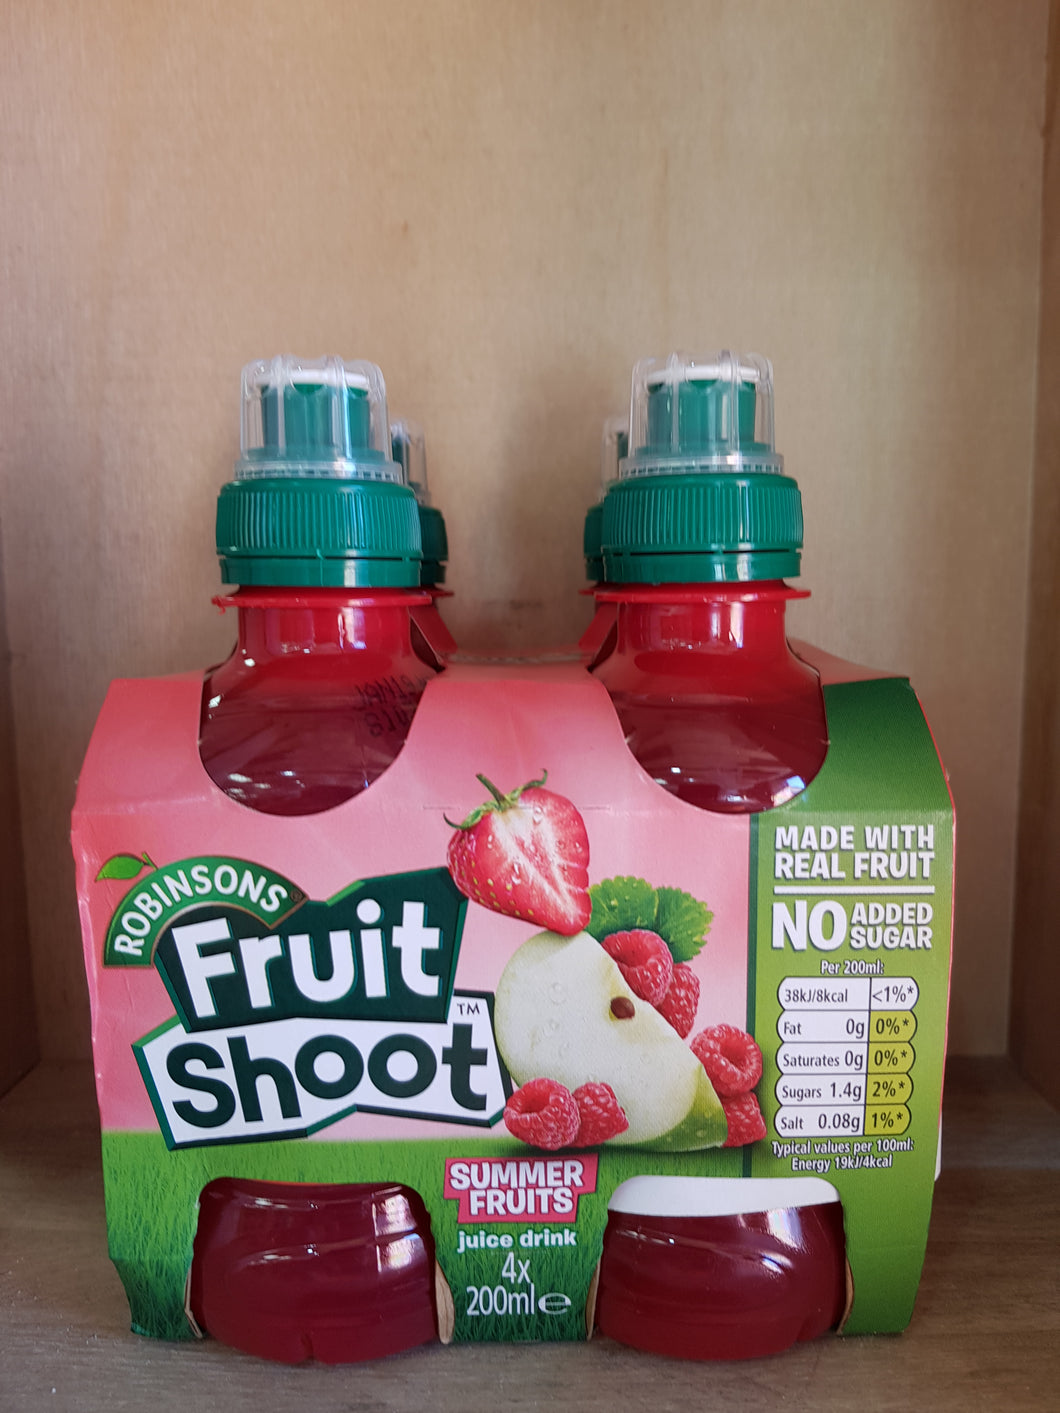 Robinsons Fruit Shoot Summer Fruits No Added Sugar 4 x 200ml